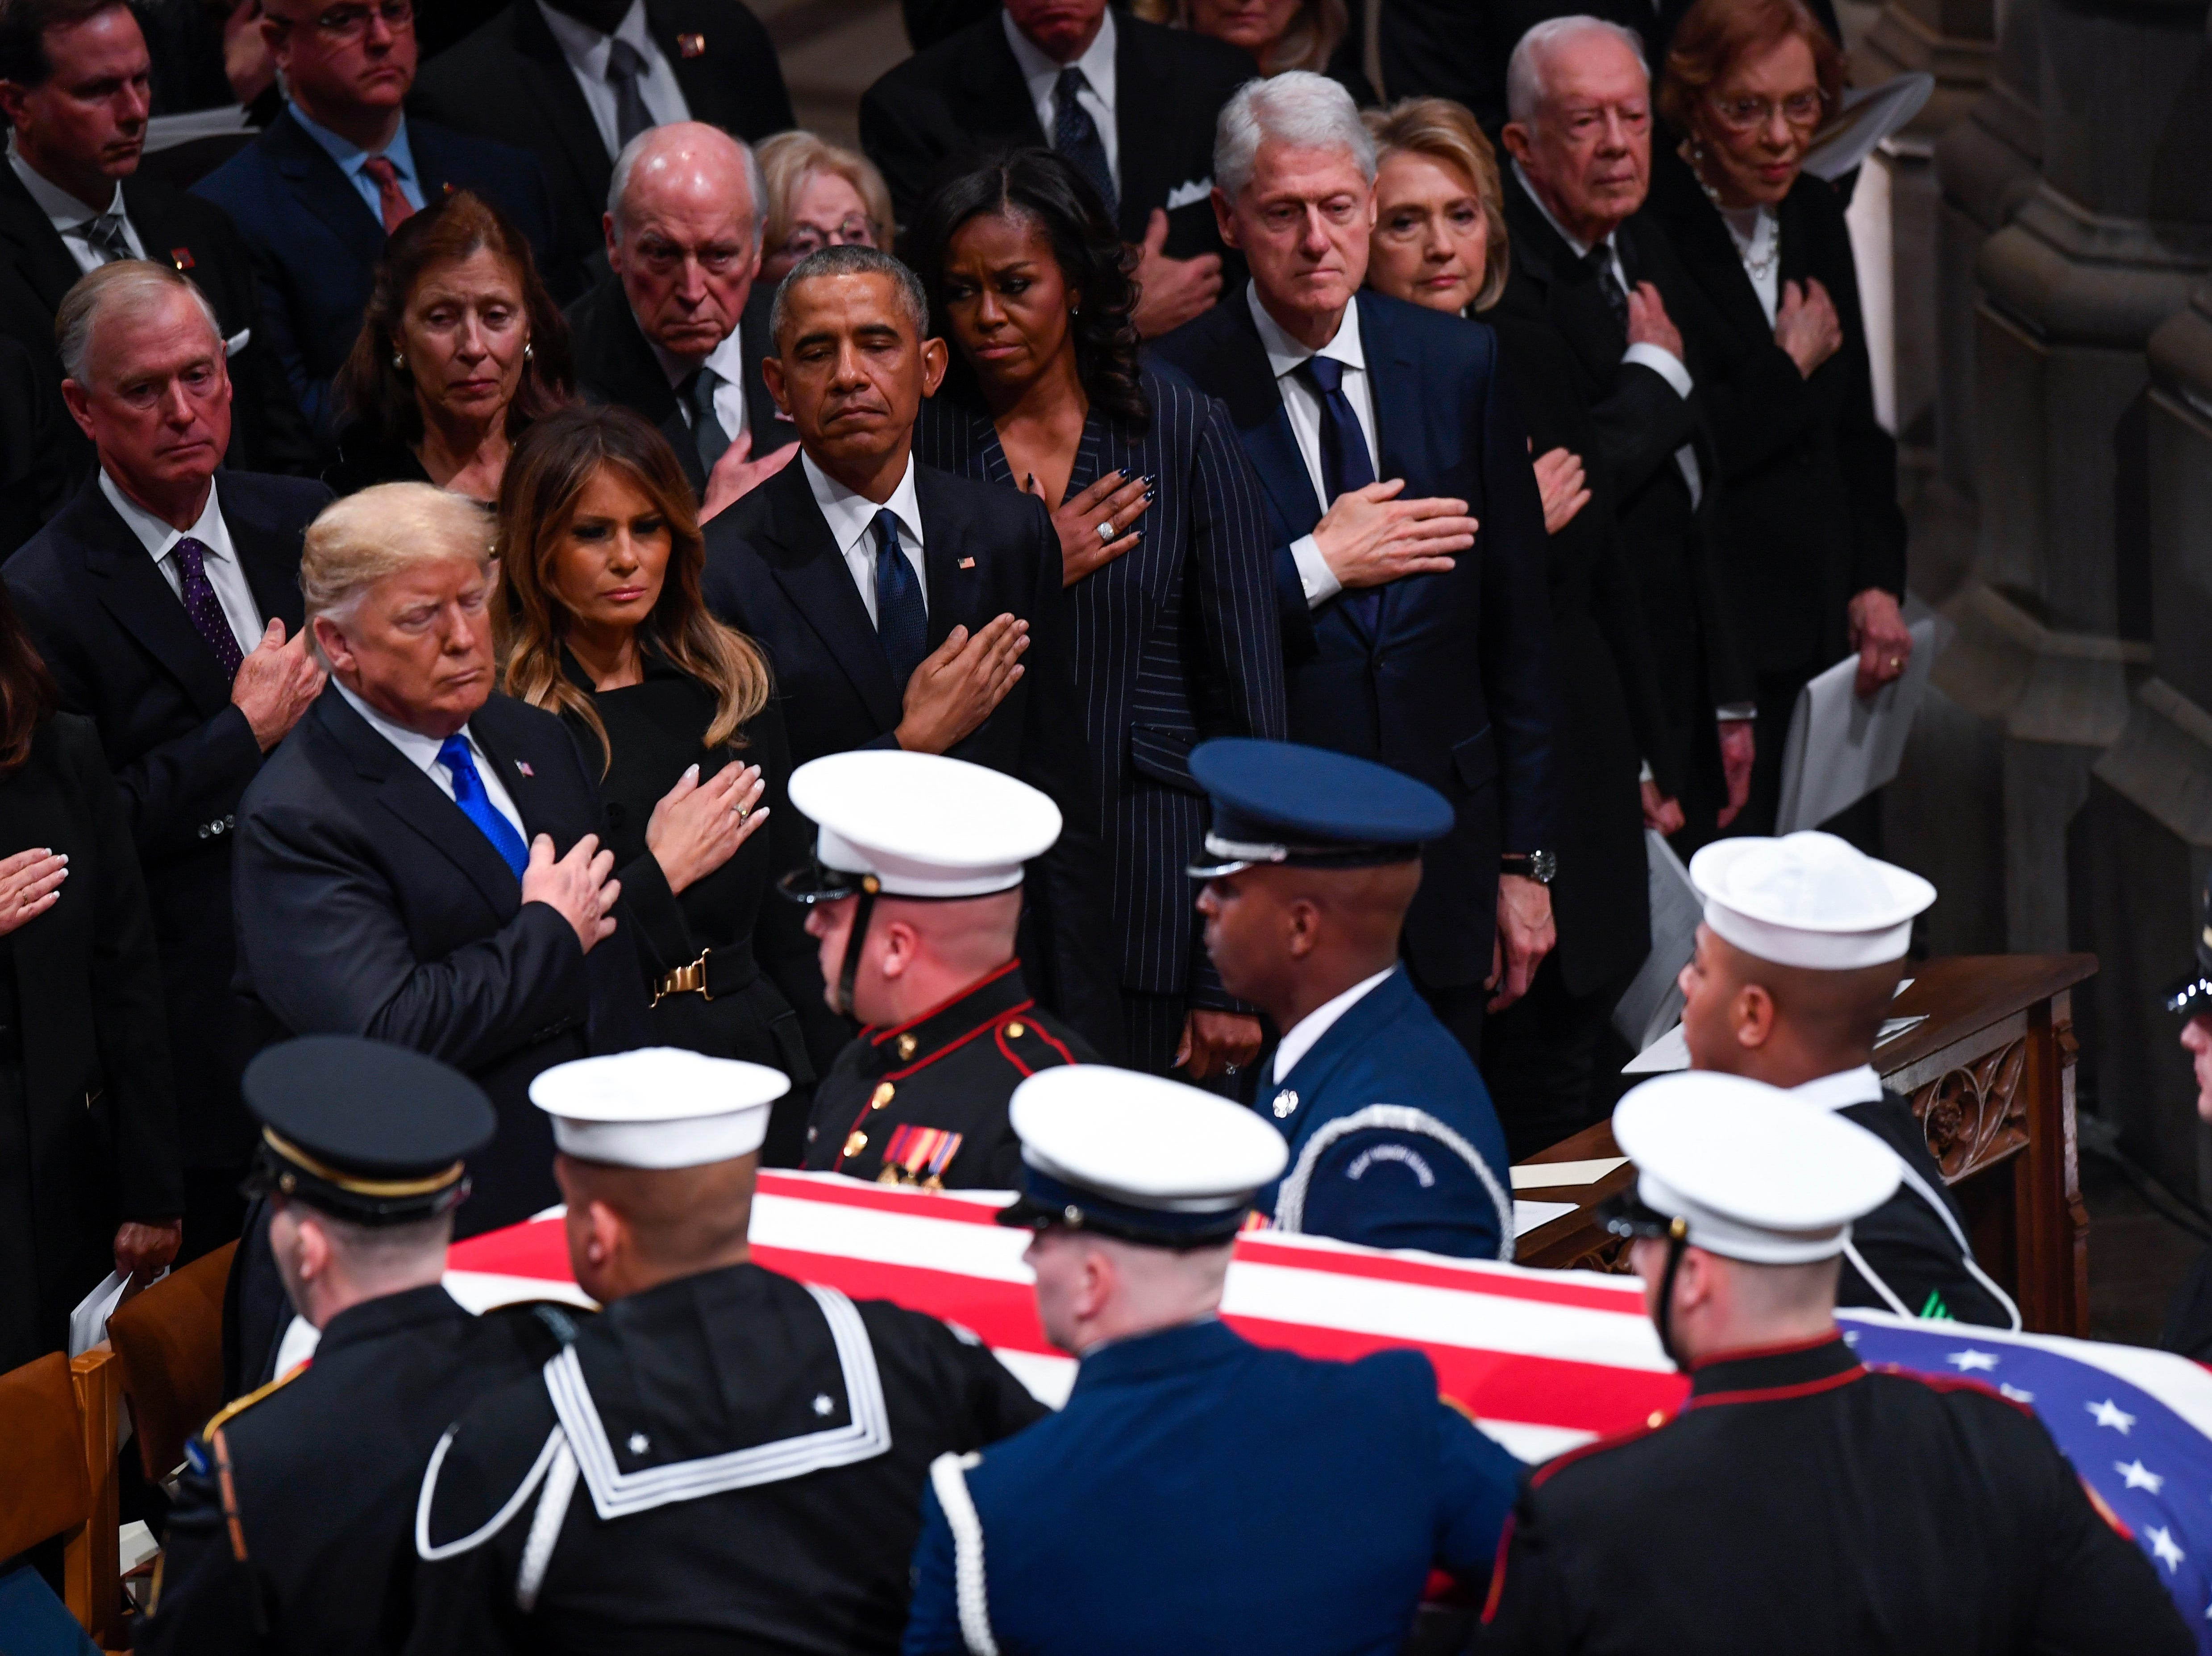 President Donald Trump and First Lady Melania Trump with former President Barack Obama and Michelle Obama, former President Bill Clinton and former Secretary of State Hillary Clinton, and former President Jimmy Carter and Rosalynn Carter place hands on heart at conclusion of the state funeral for former President George H.W. Bush at the Washington National Cathedral on Dec. 5, 2018.